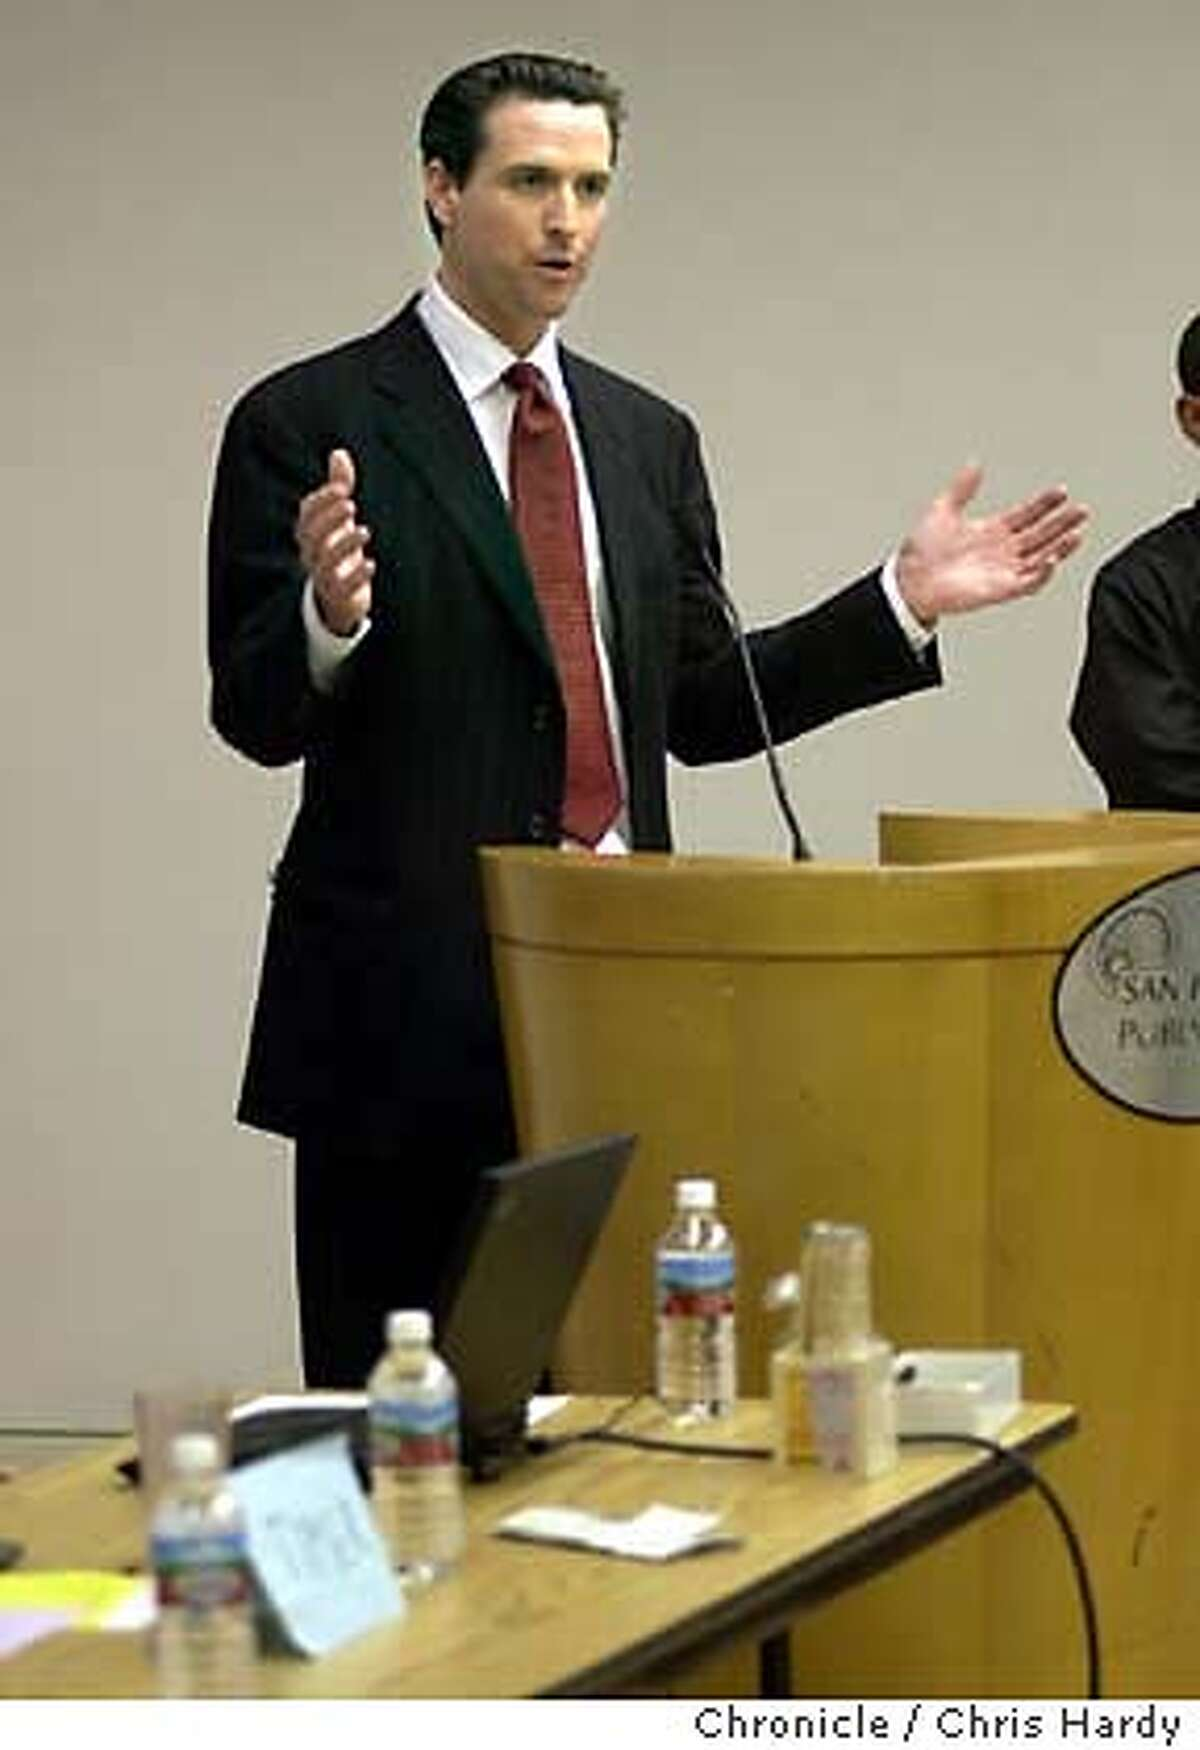 imigrant31010_ch.JPG Gavin Newsom speaking. The newly-formed San Francisco Immigrant Voters Coalition, which seeks to support the city's 37 percent immigrant population, is hosting a public forum for mayoral candidates. Gavin Newsom, Susan Leal, Matt Gonzalez, Tom Ammiano, and Angela Alioto will attend. Event on 10/30/03 in San Francisco. CHRIS HARDY / The Chronicle MANDATORY CREDIT FOR PHOTOG AND SF CHRONICLE/ -MAGS OUT